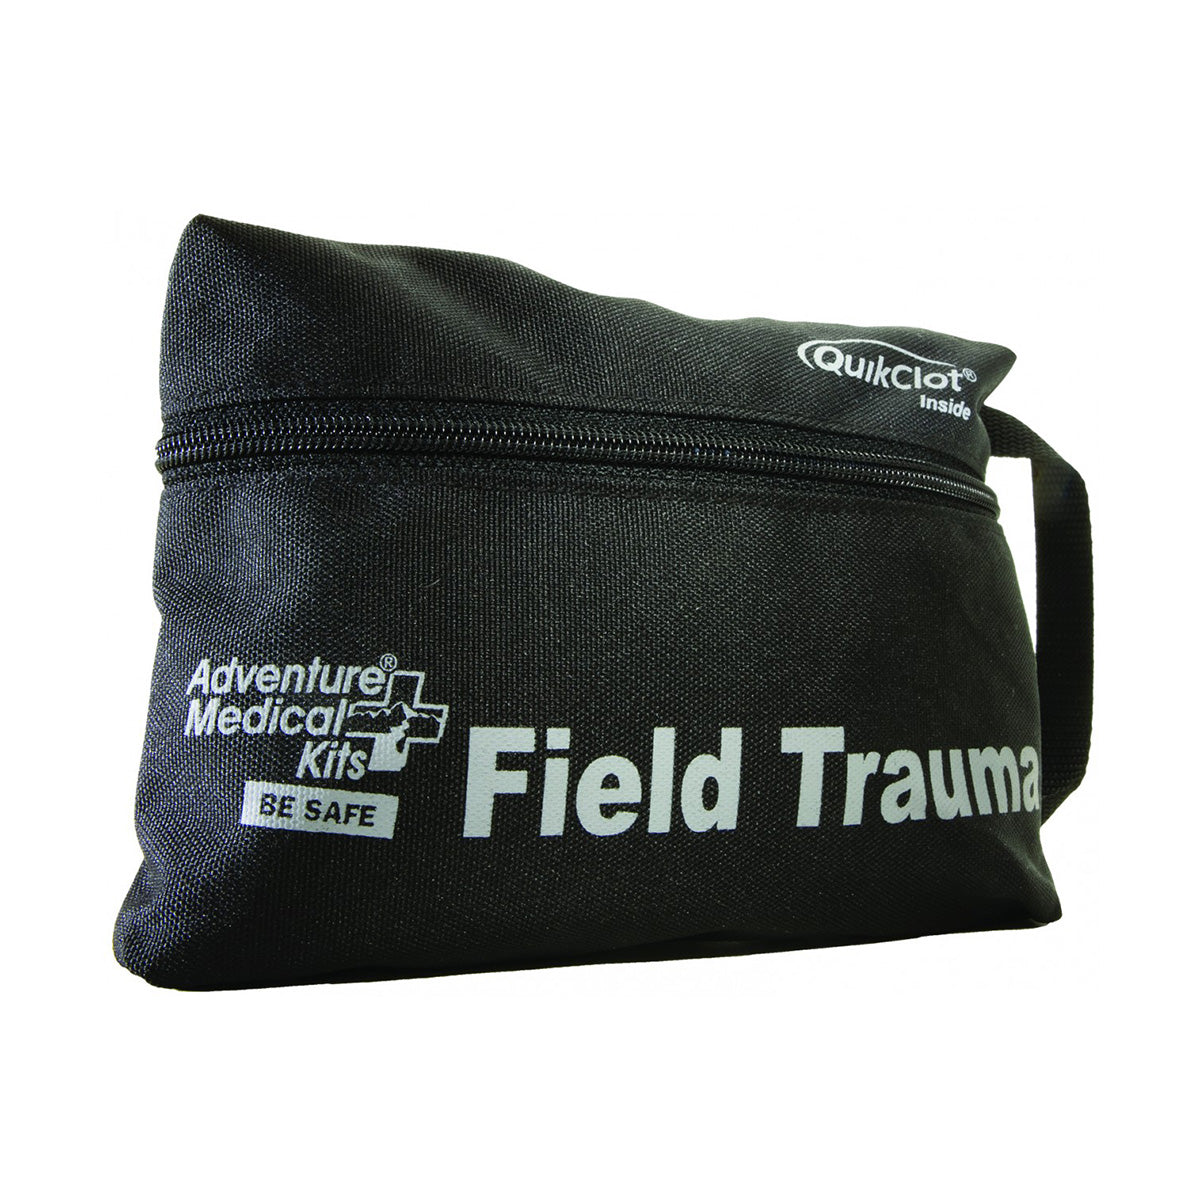 Tactical Field Trauma With Quikclot® First Aid Kit By Tender Corporation/adventure Medical Kits